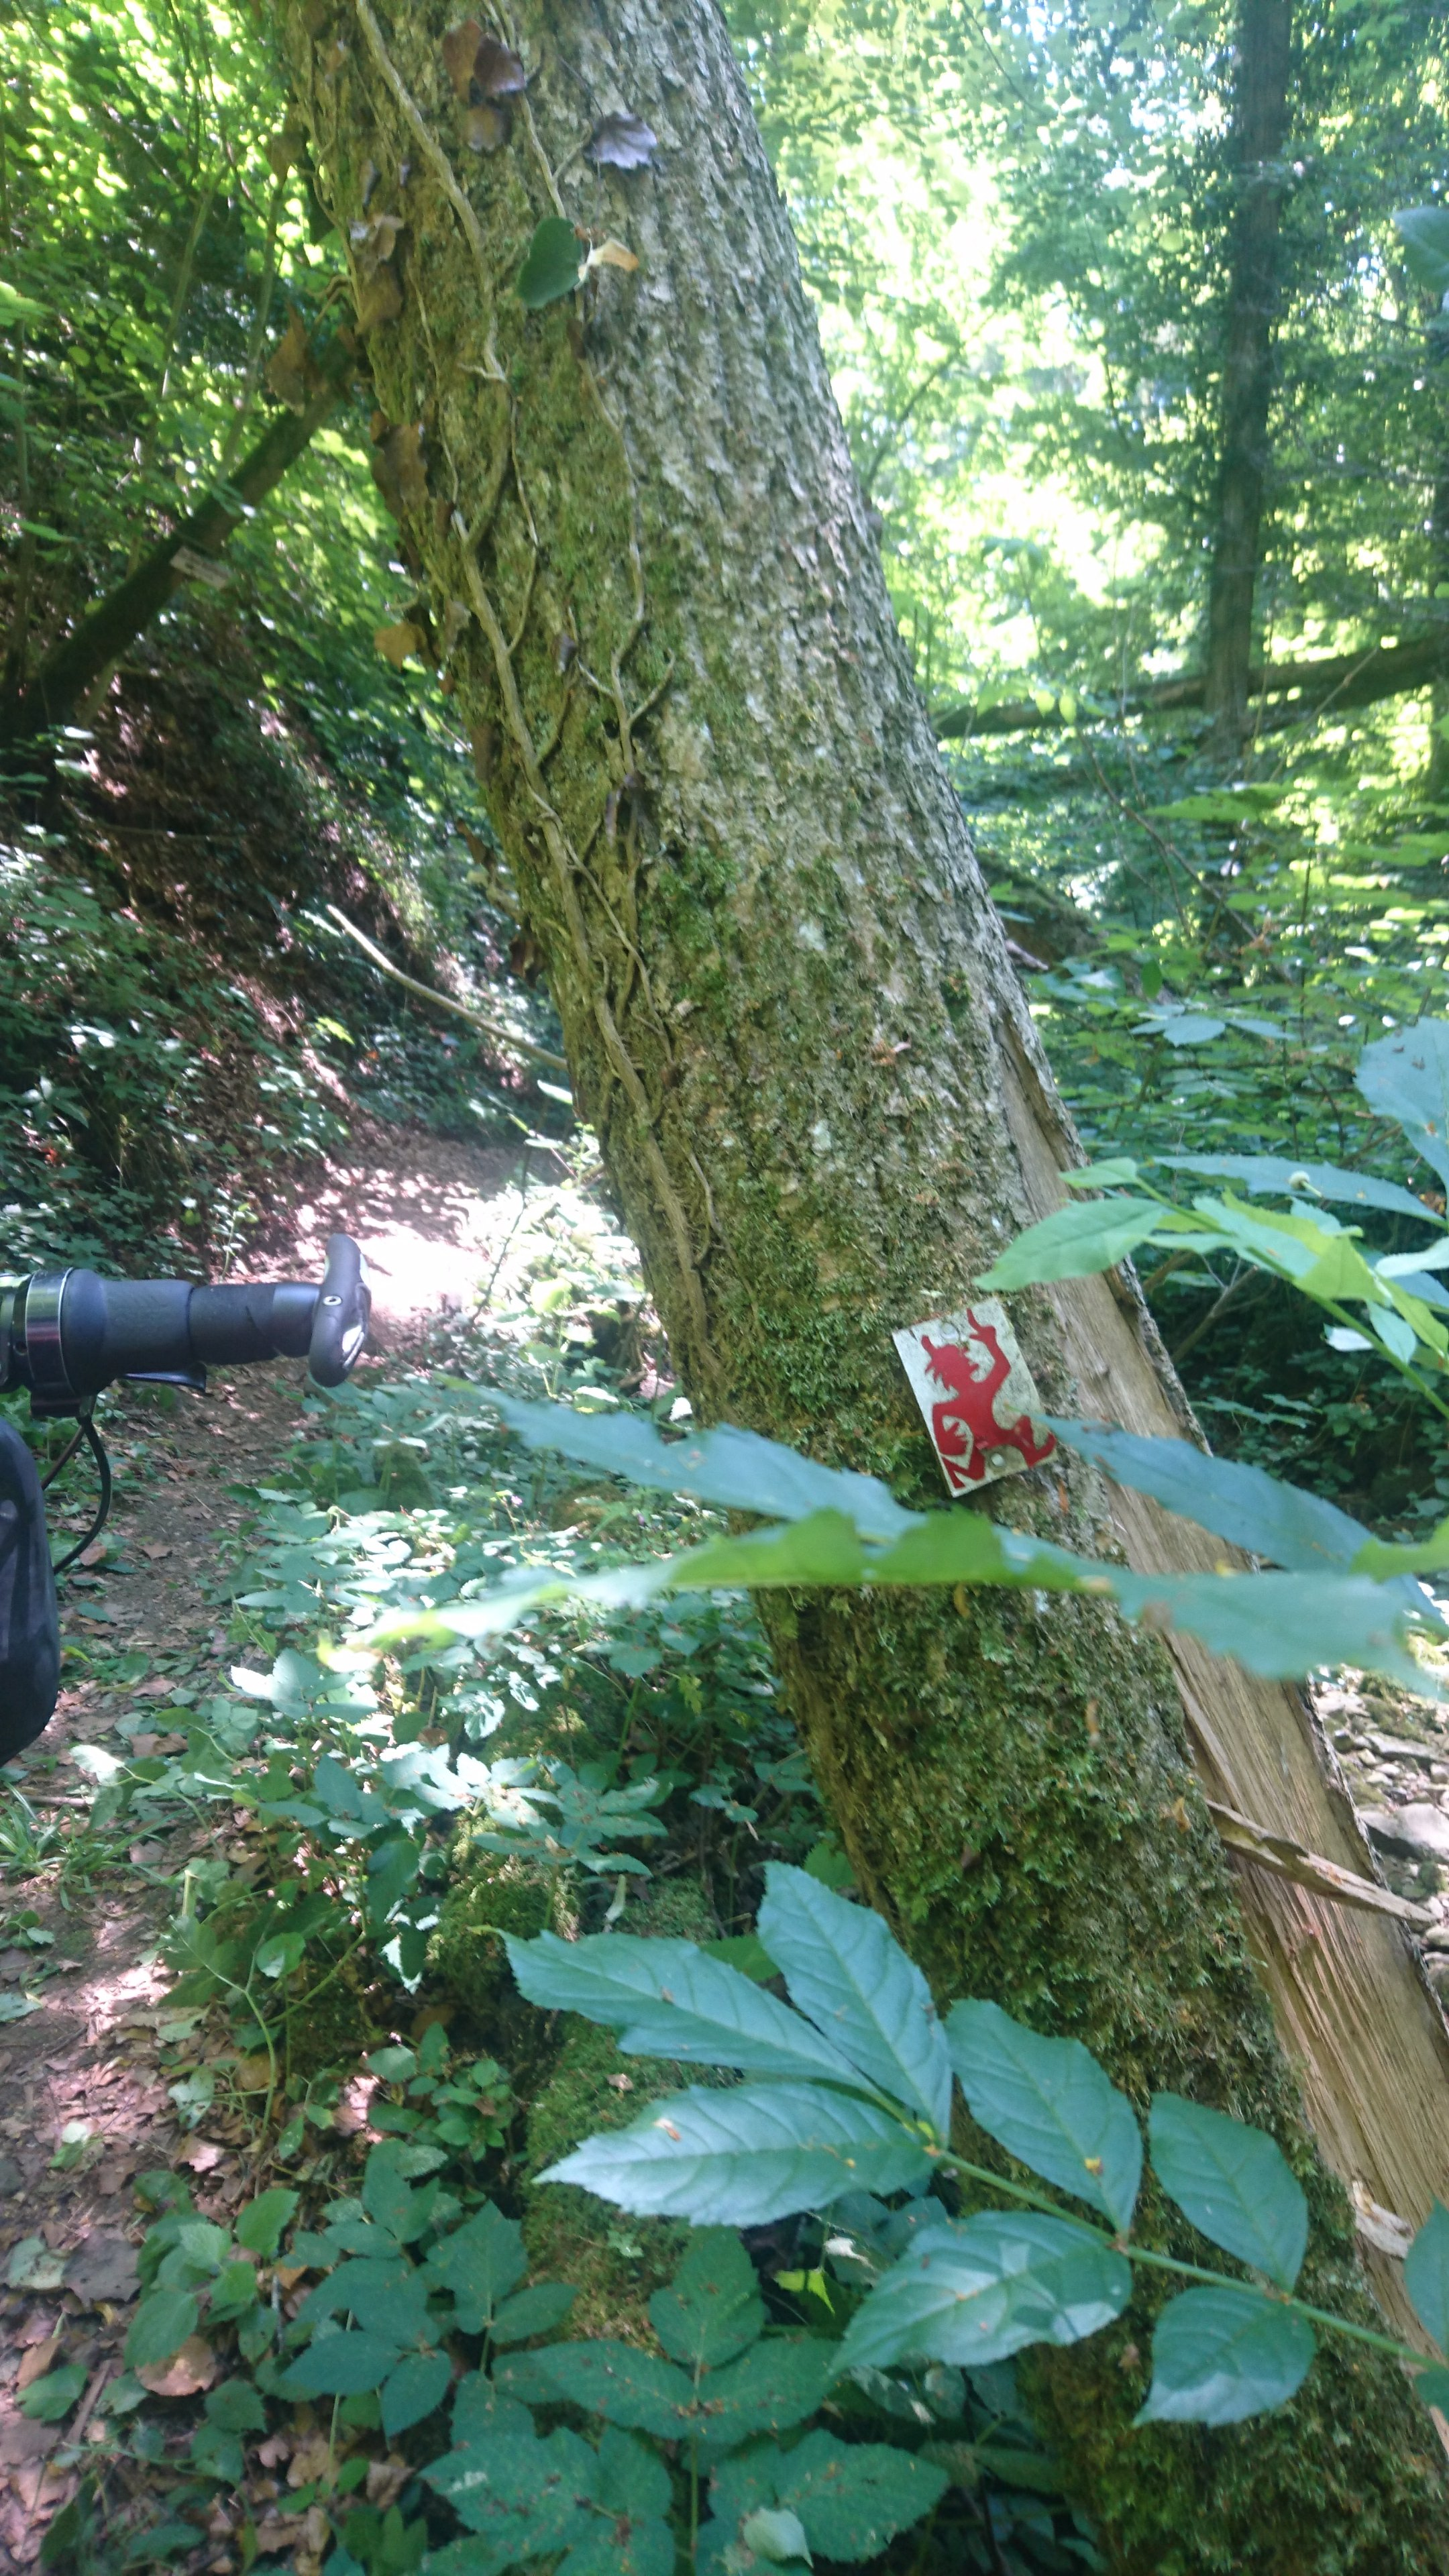 Sign on tree of Devil marking the trail